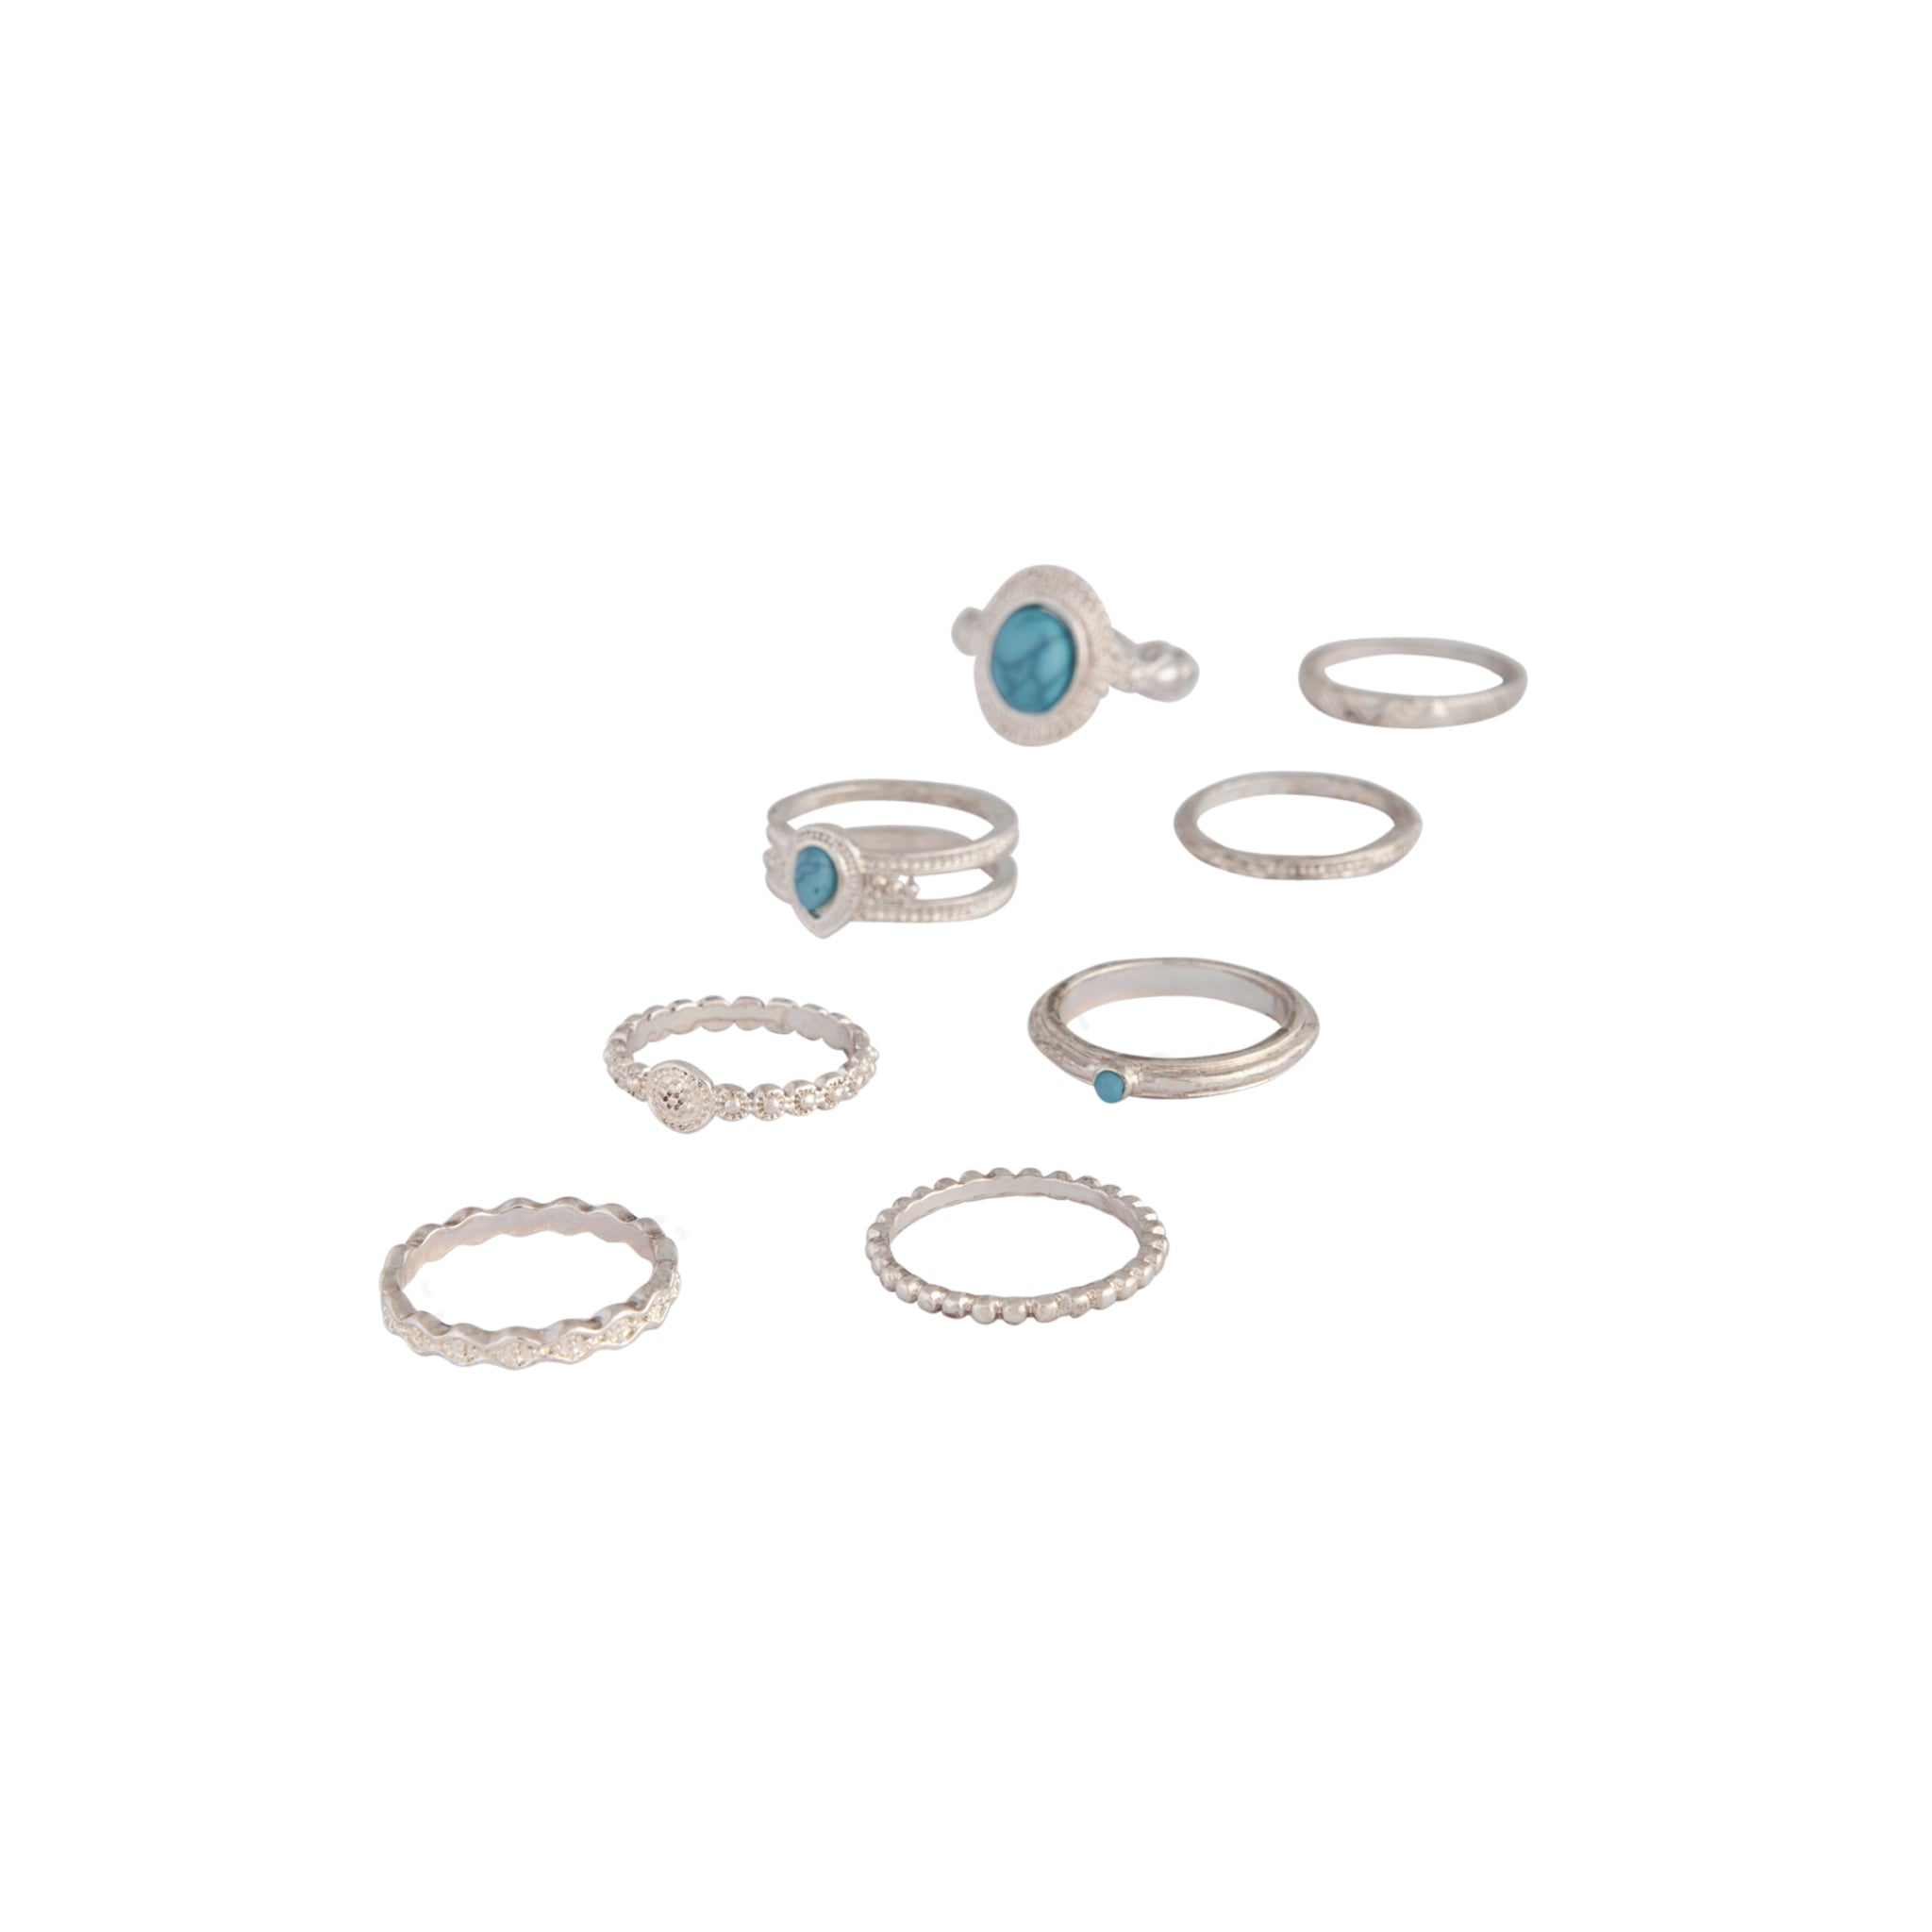 SILVER STACKABLE RING PACK WITH TURQUOISE BEAD ACCENTS